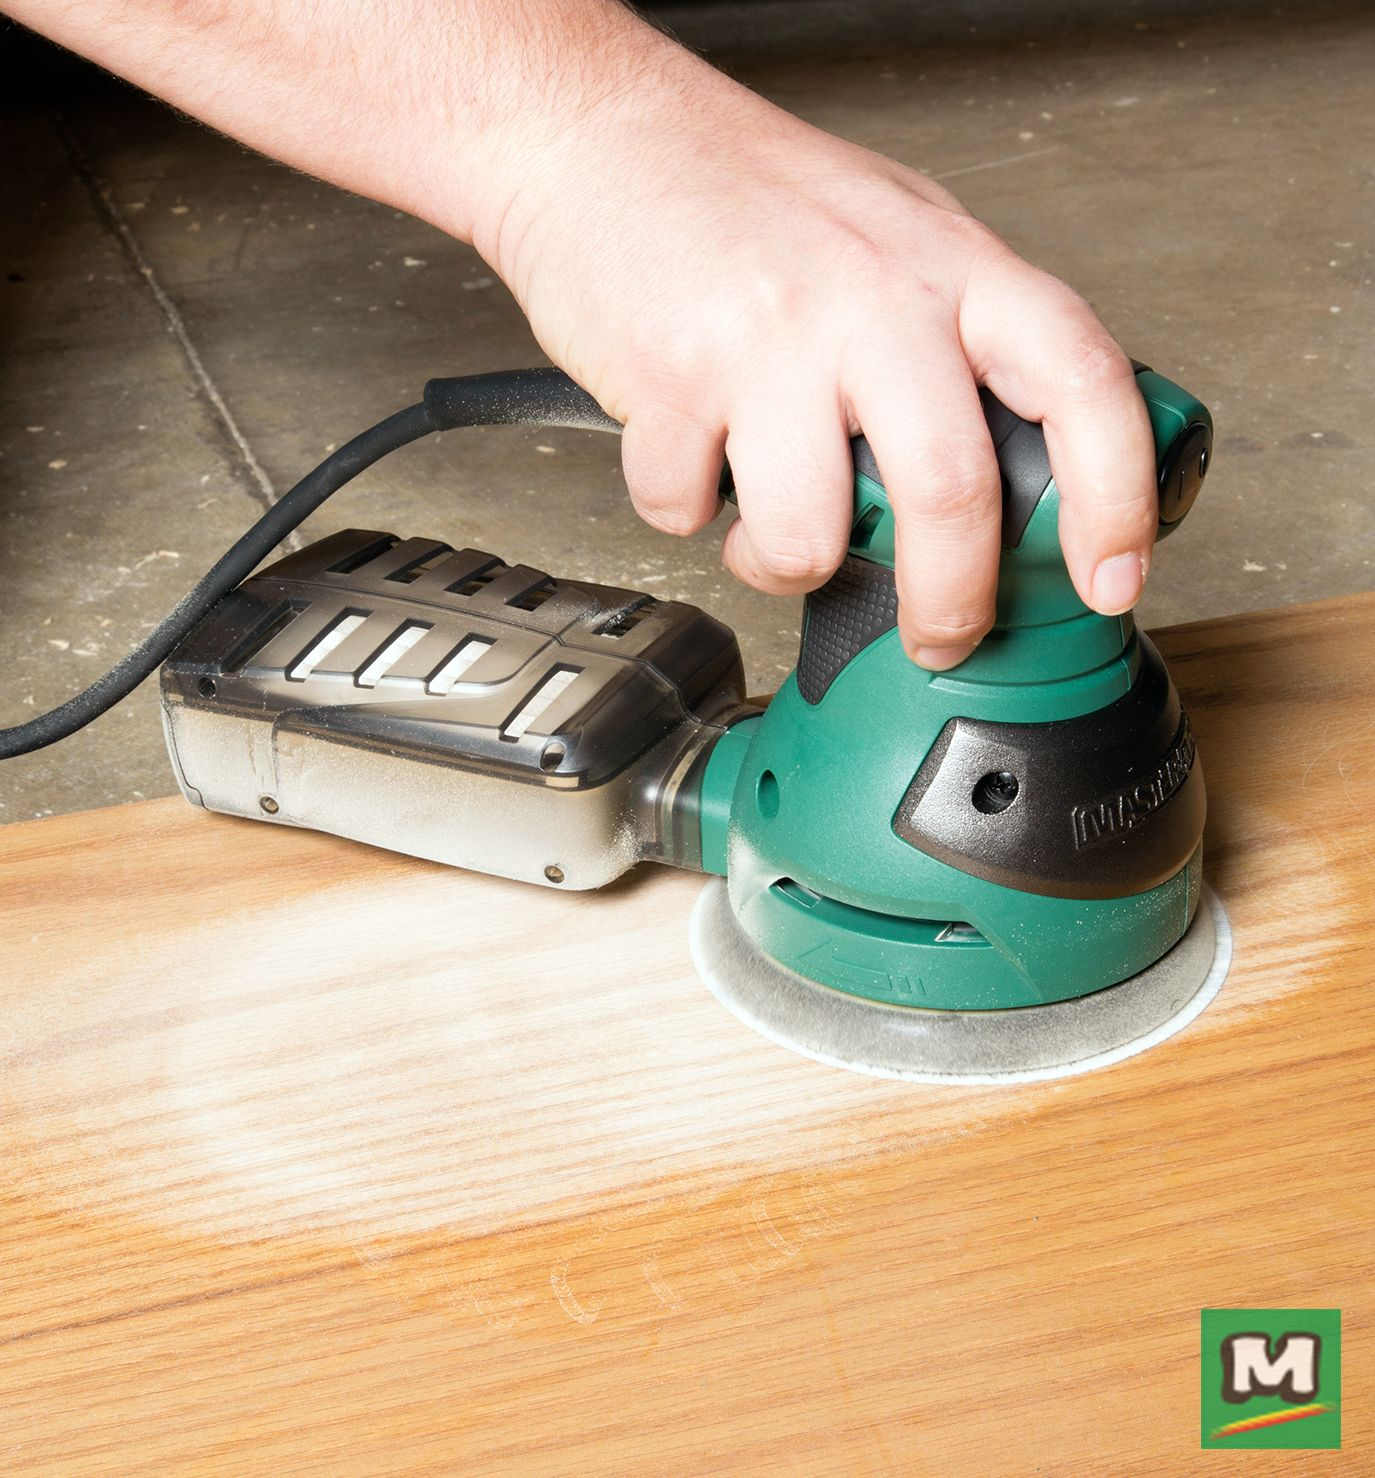 The Masterforce 5 Random Orbital Sander Features A Palm Style Handle Allowing For Easy Control Best Random Orbital Sander Power Tool Accessories Woodworking